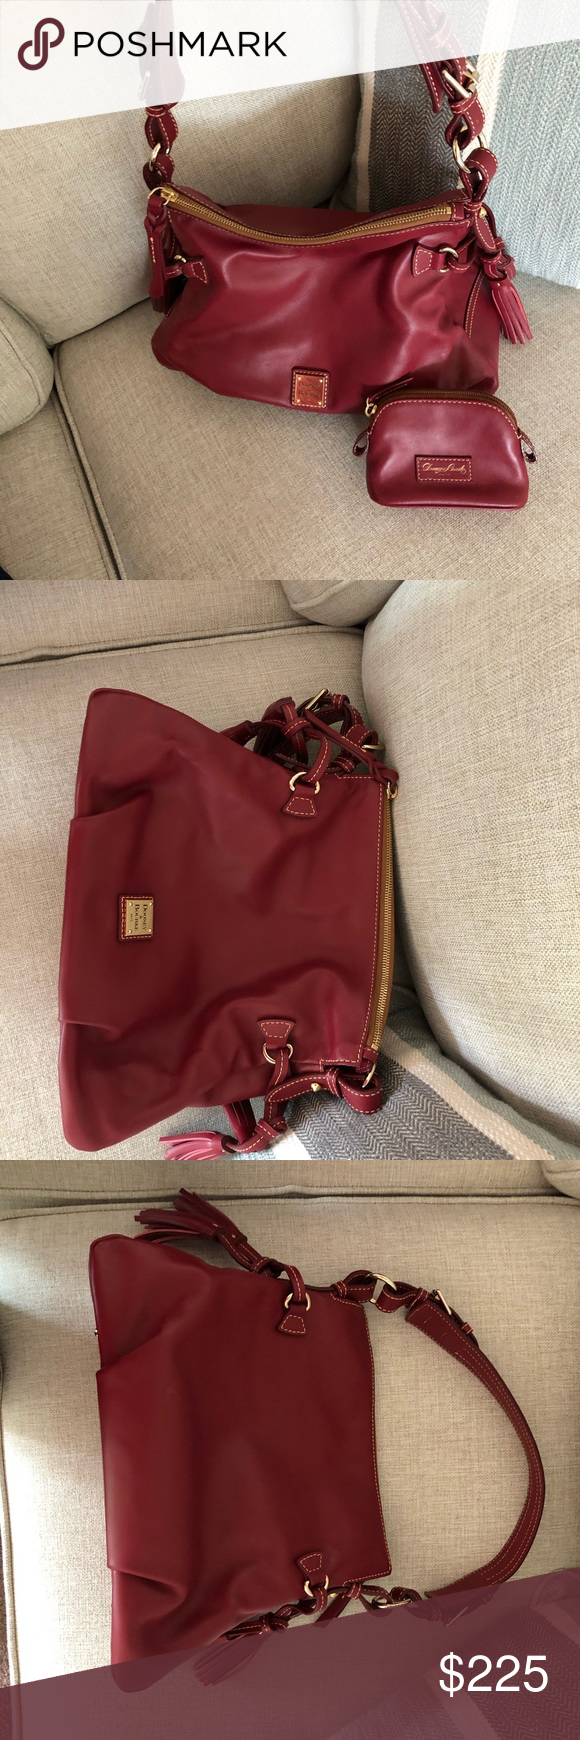 Dooney & Bourke Teagan Mulberry Bag and pouch EUC Perfect condition carried once Dooney & Bourke Bags Shoulder Bags #mulberrybag Dooney & Bourke Teagan Mulberry Bag and pouch EUC Perfect condition carried once Dooney & Bourke Bags Shoulder Bags #mulberrybag